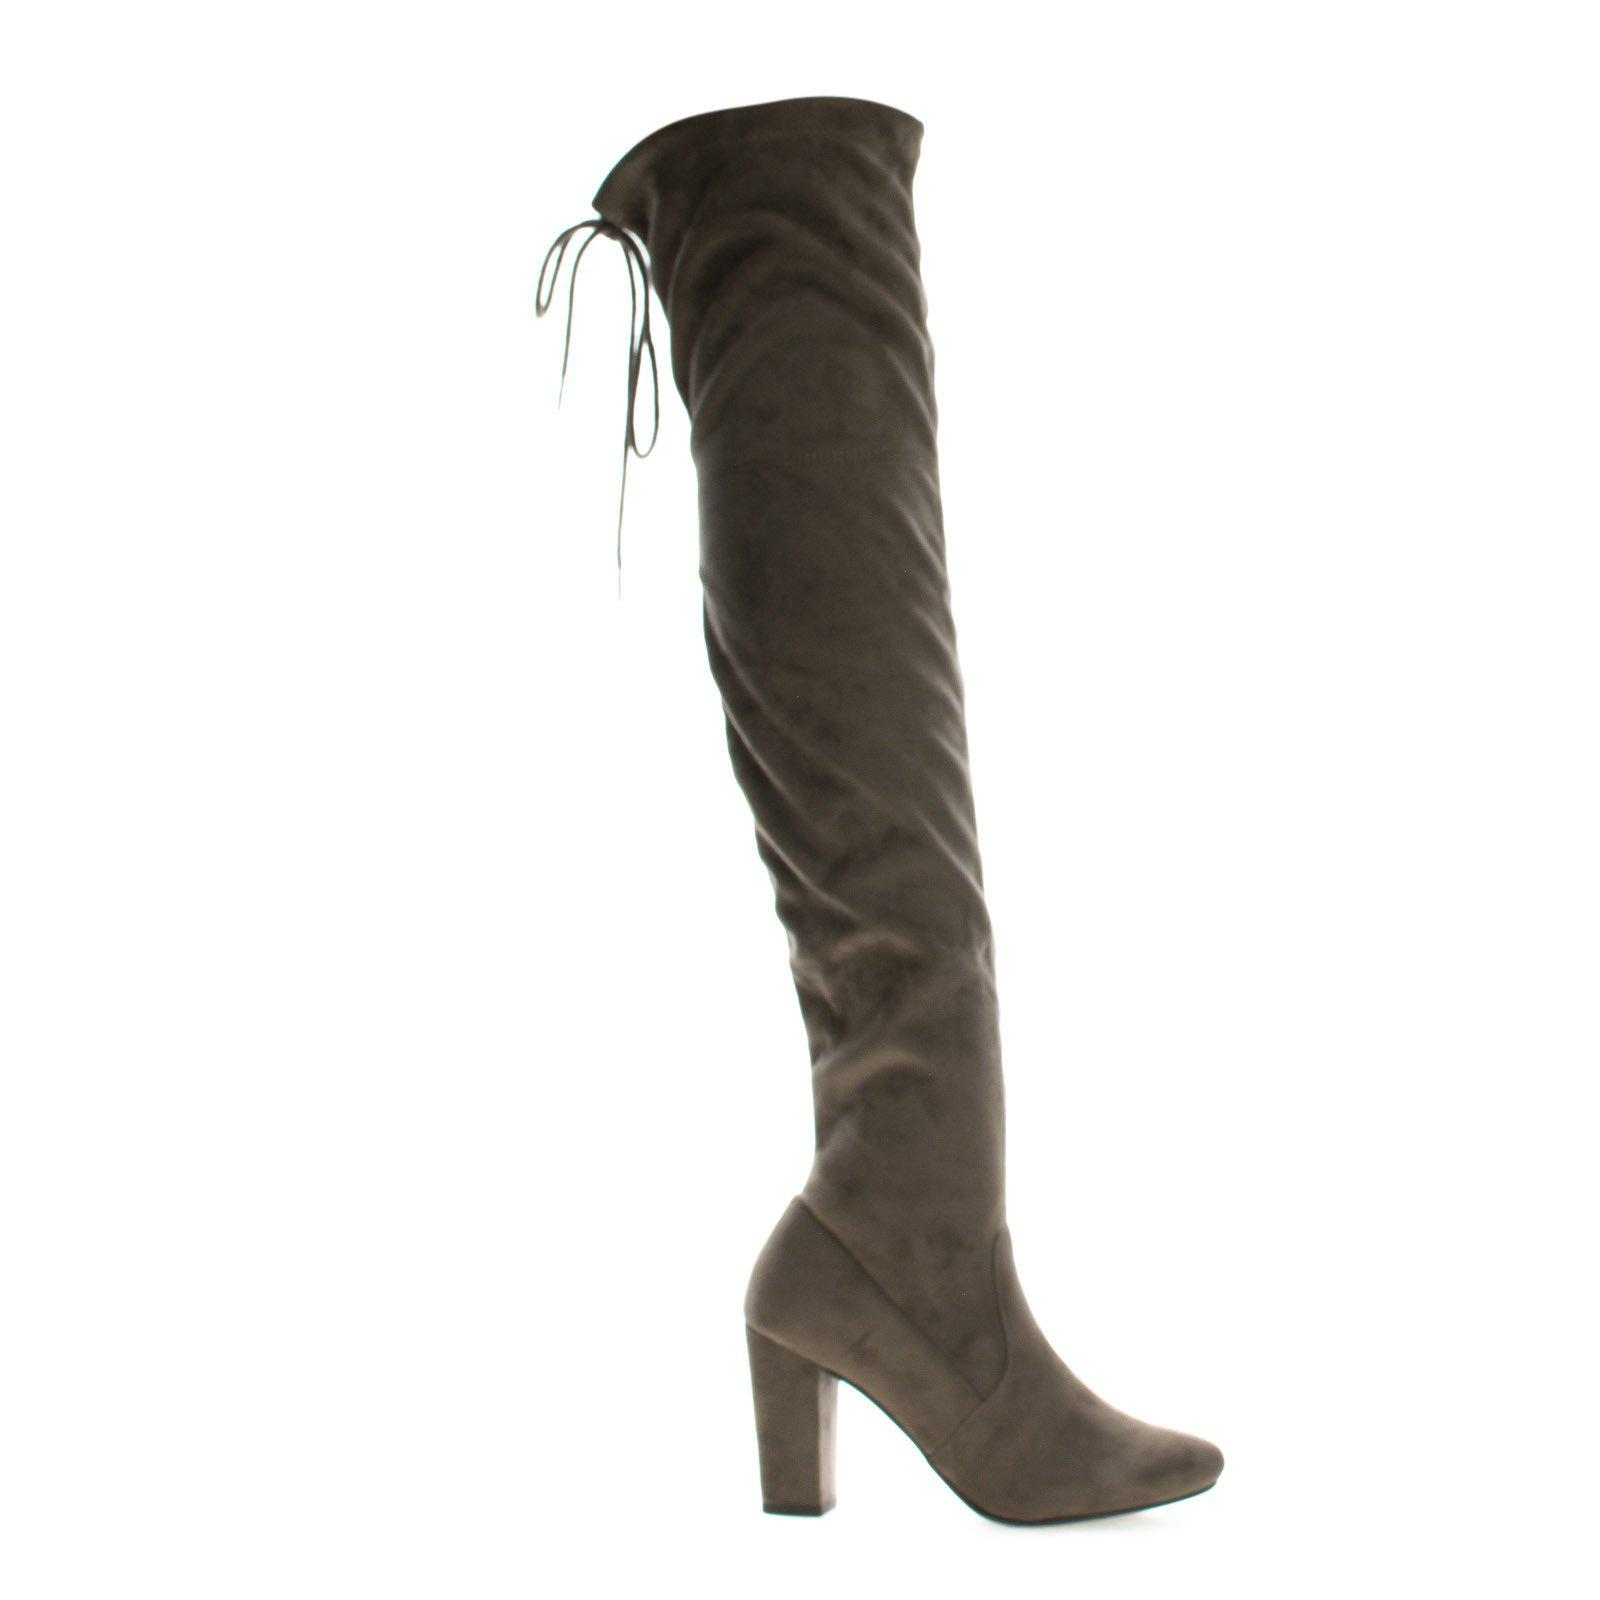 Image of Snivy By Delicious, OTK Over Knee Thigh High Slouchy Boots w/ Back Lace Tie & Block Heel